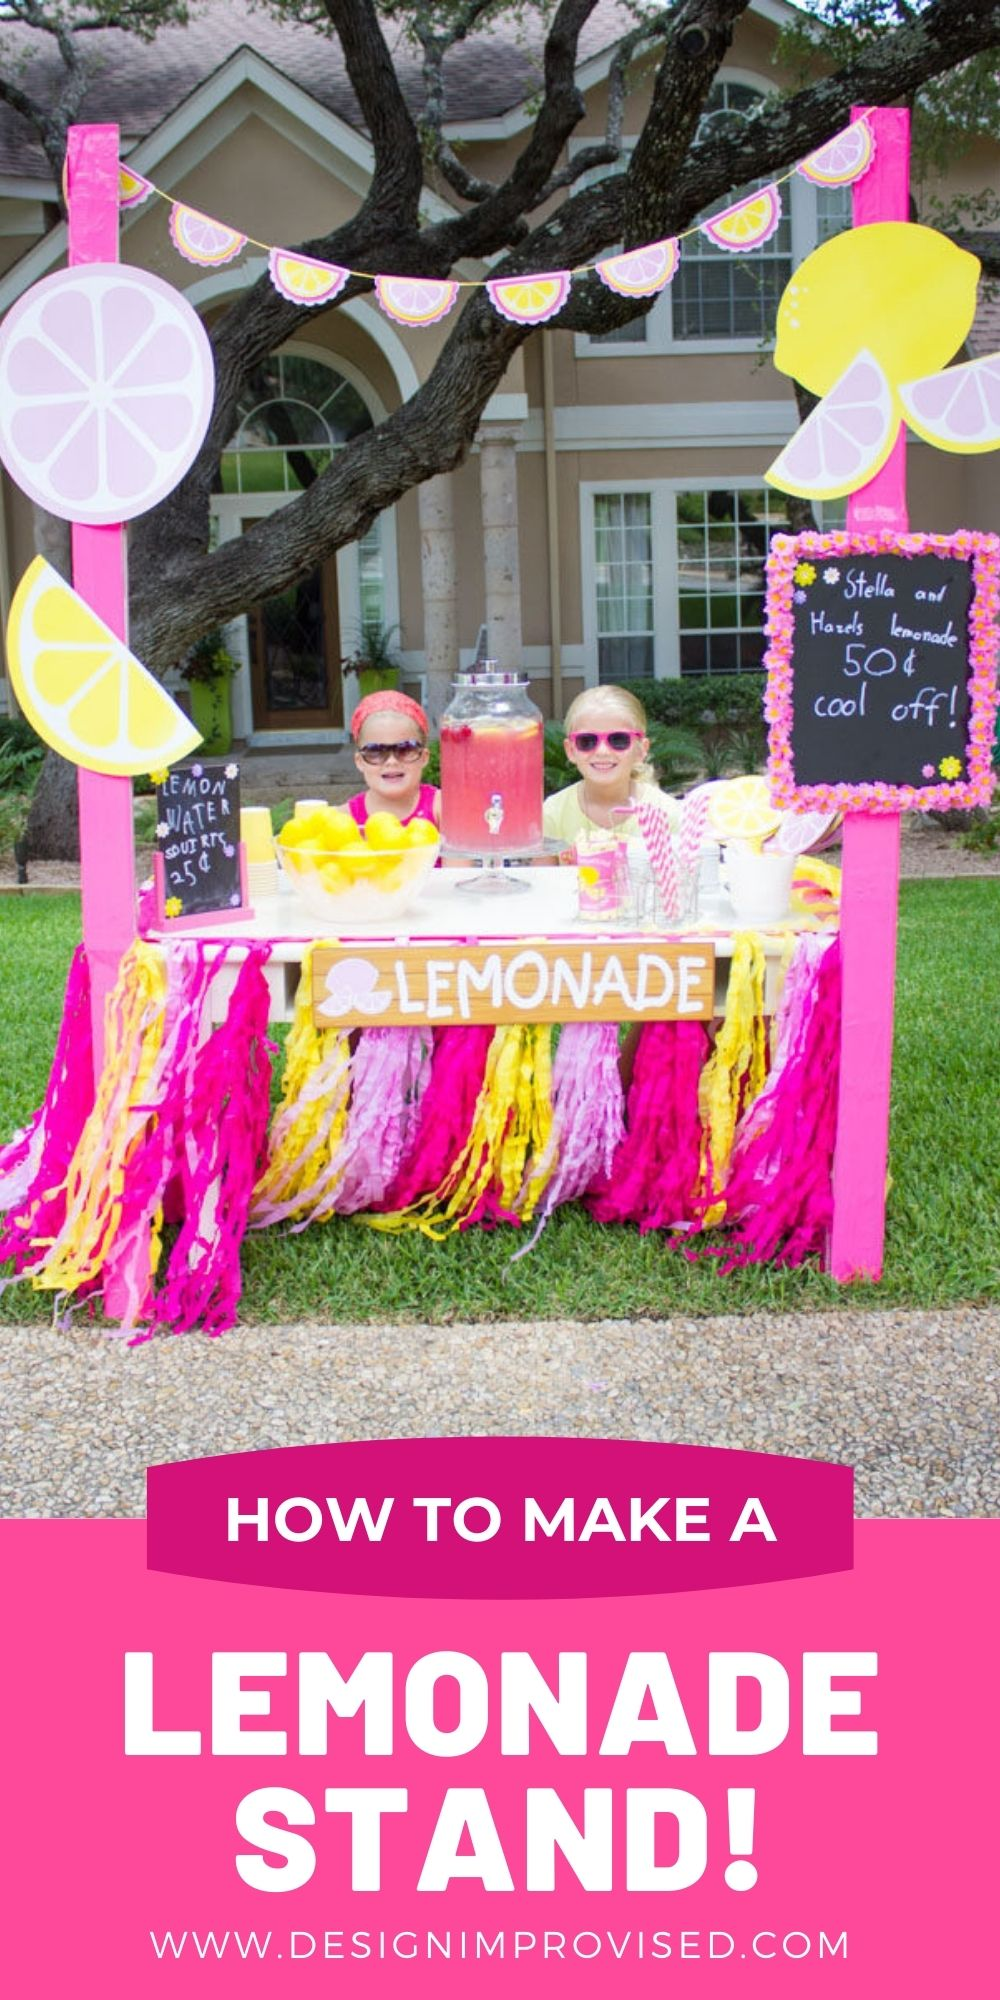 How to have a successful lemonade stand tips and tricks